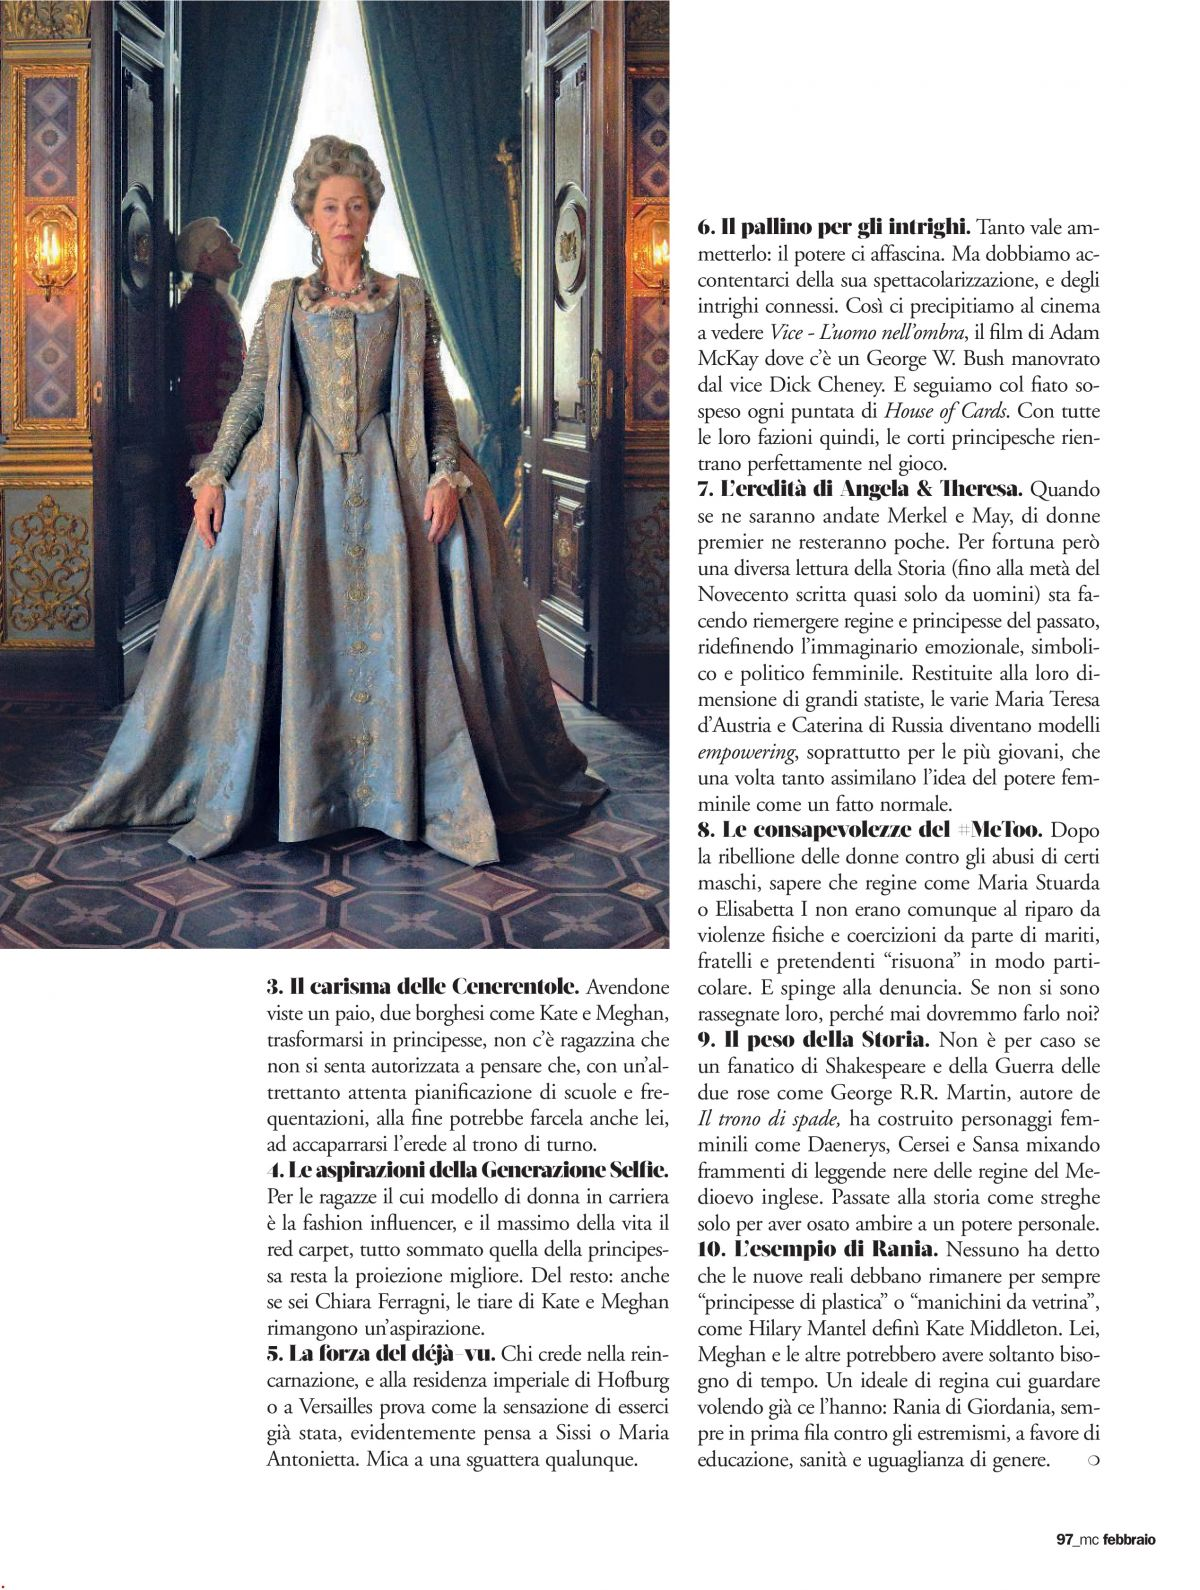 margot-robbie-and-saoirse-ronan-in-marie-claire-magazine-italy-february-2019-3.jpg